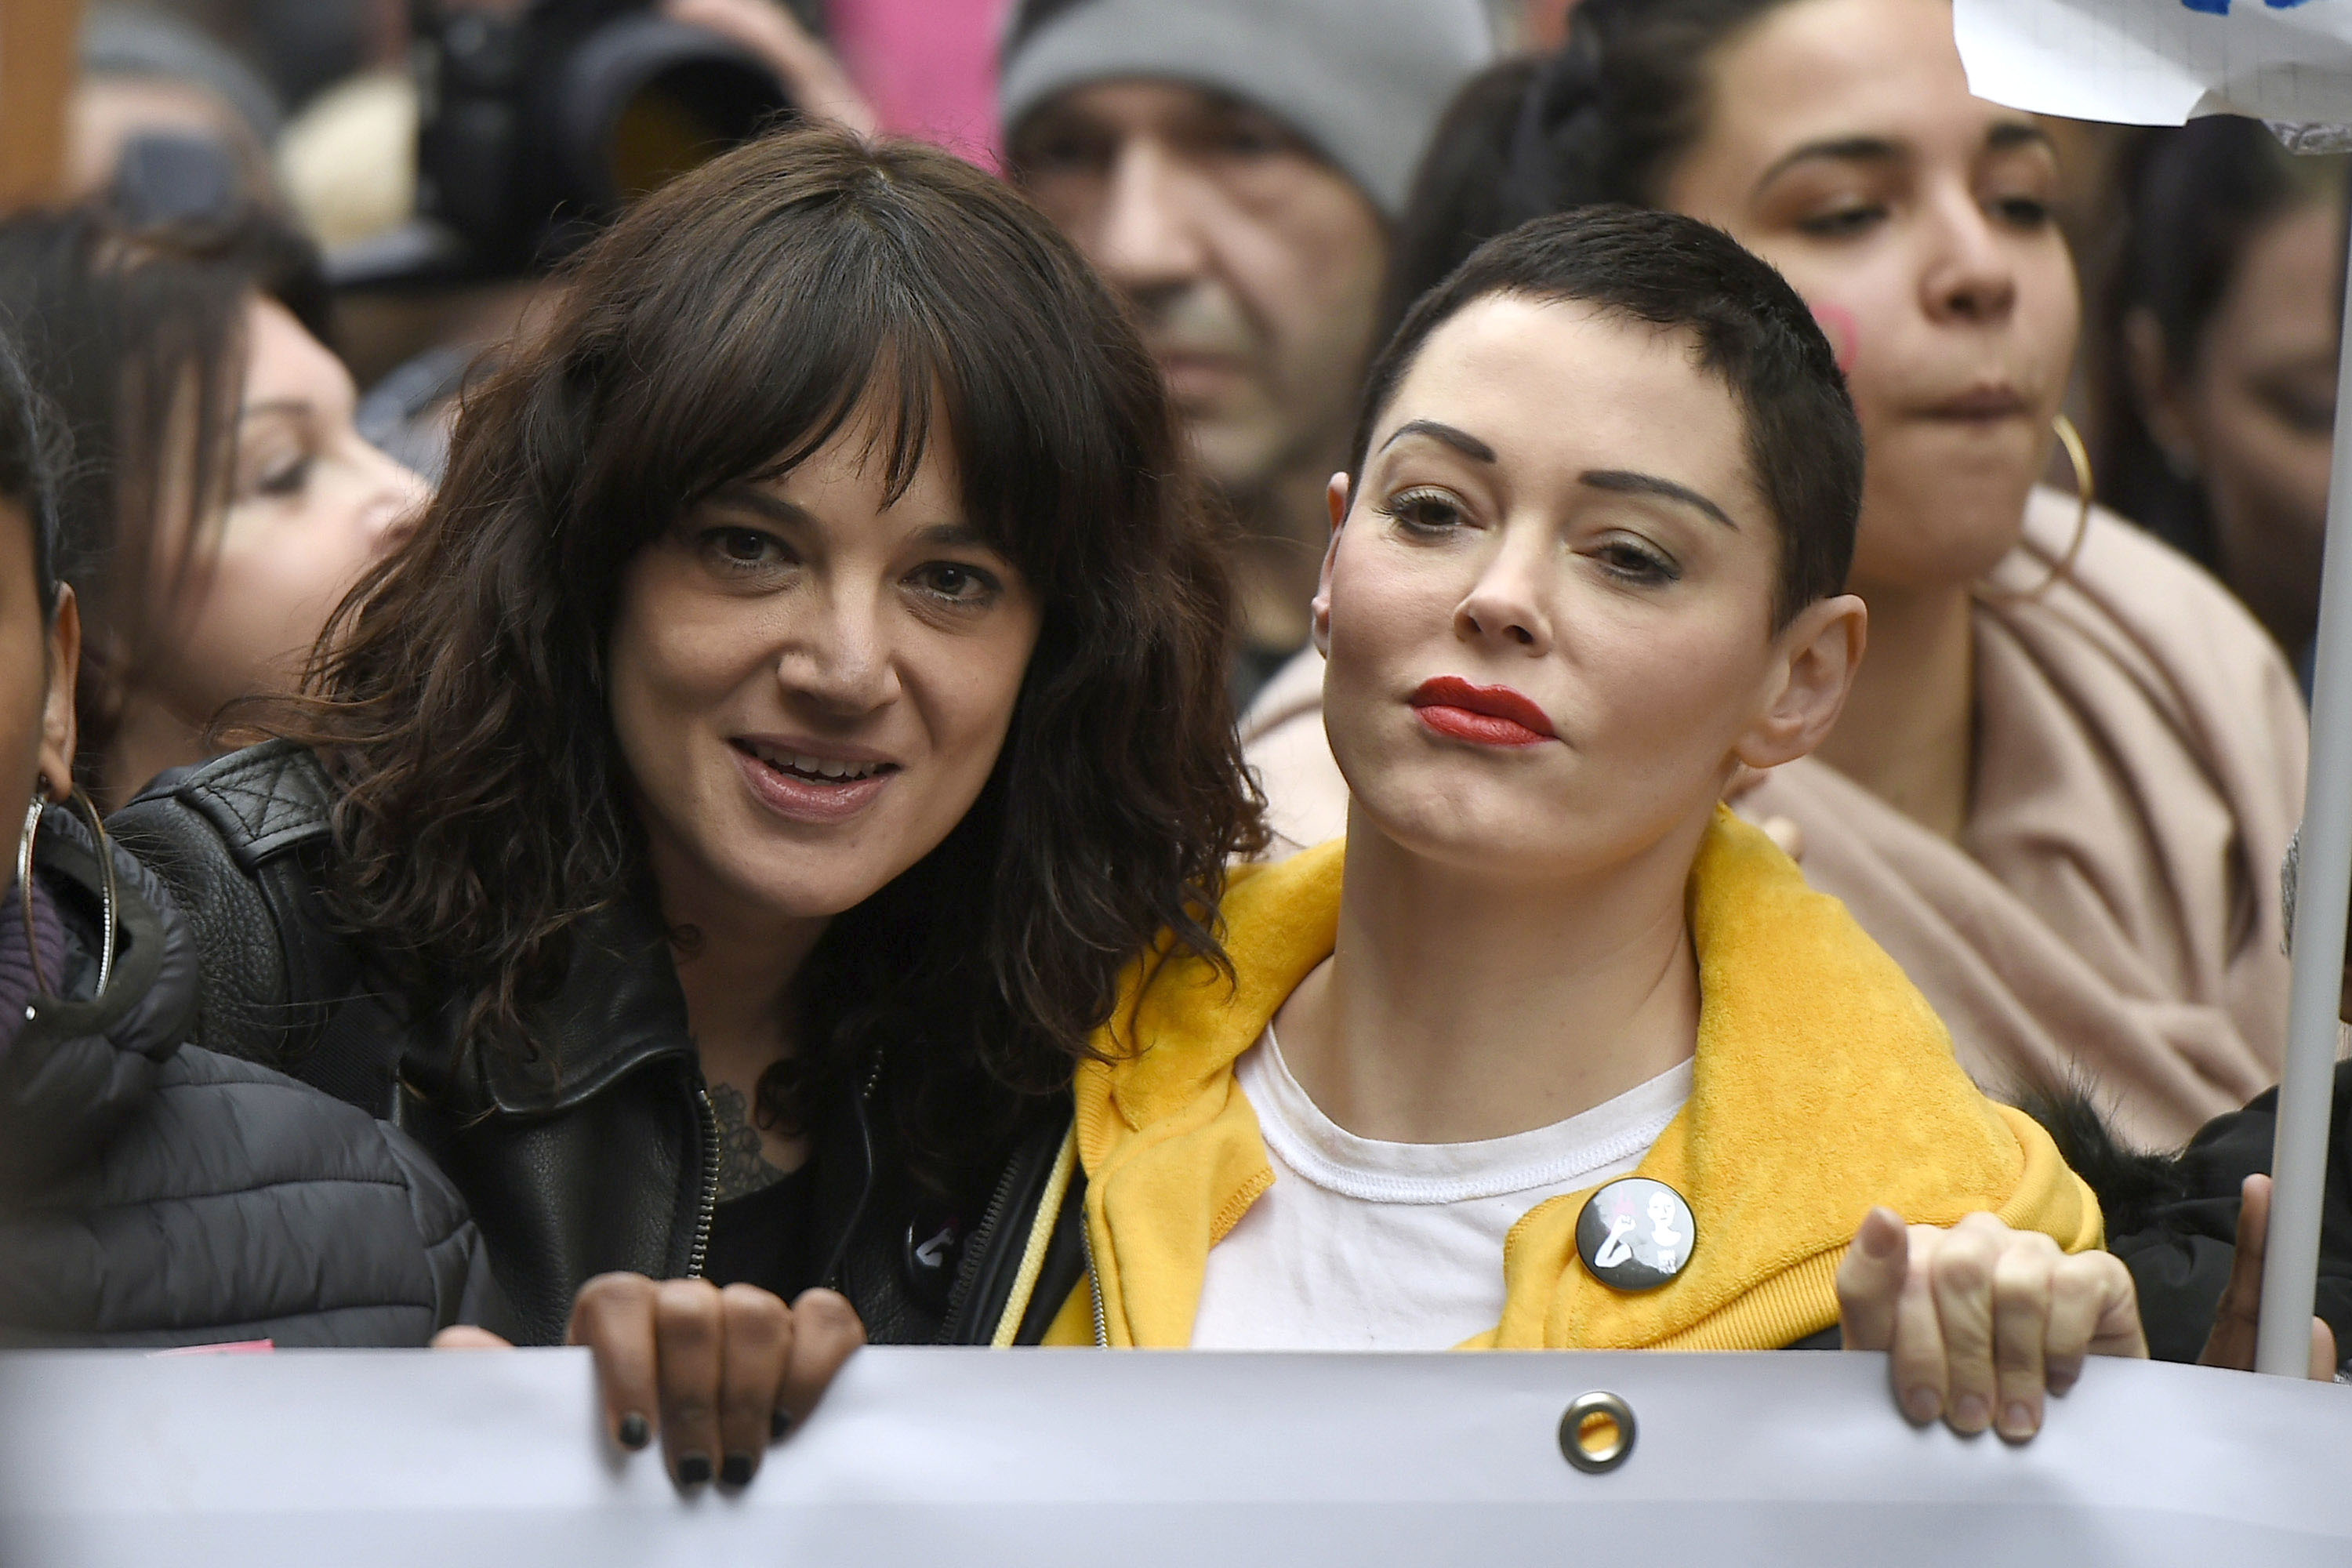 Asia Argento and Rose McGowan participate in a parade on International Women's Day in Rome, Italy.Featuring: Asia Argento, Rose McGowanWhere: RomeWhen: 08 Mar 2018Credit: IPA/WENN.com**Only available for publication in UK, USA, Germany, Austria, Switzerland**